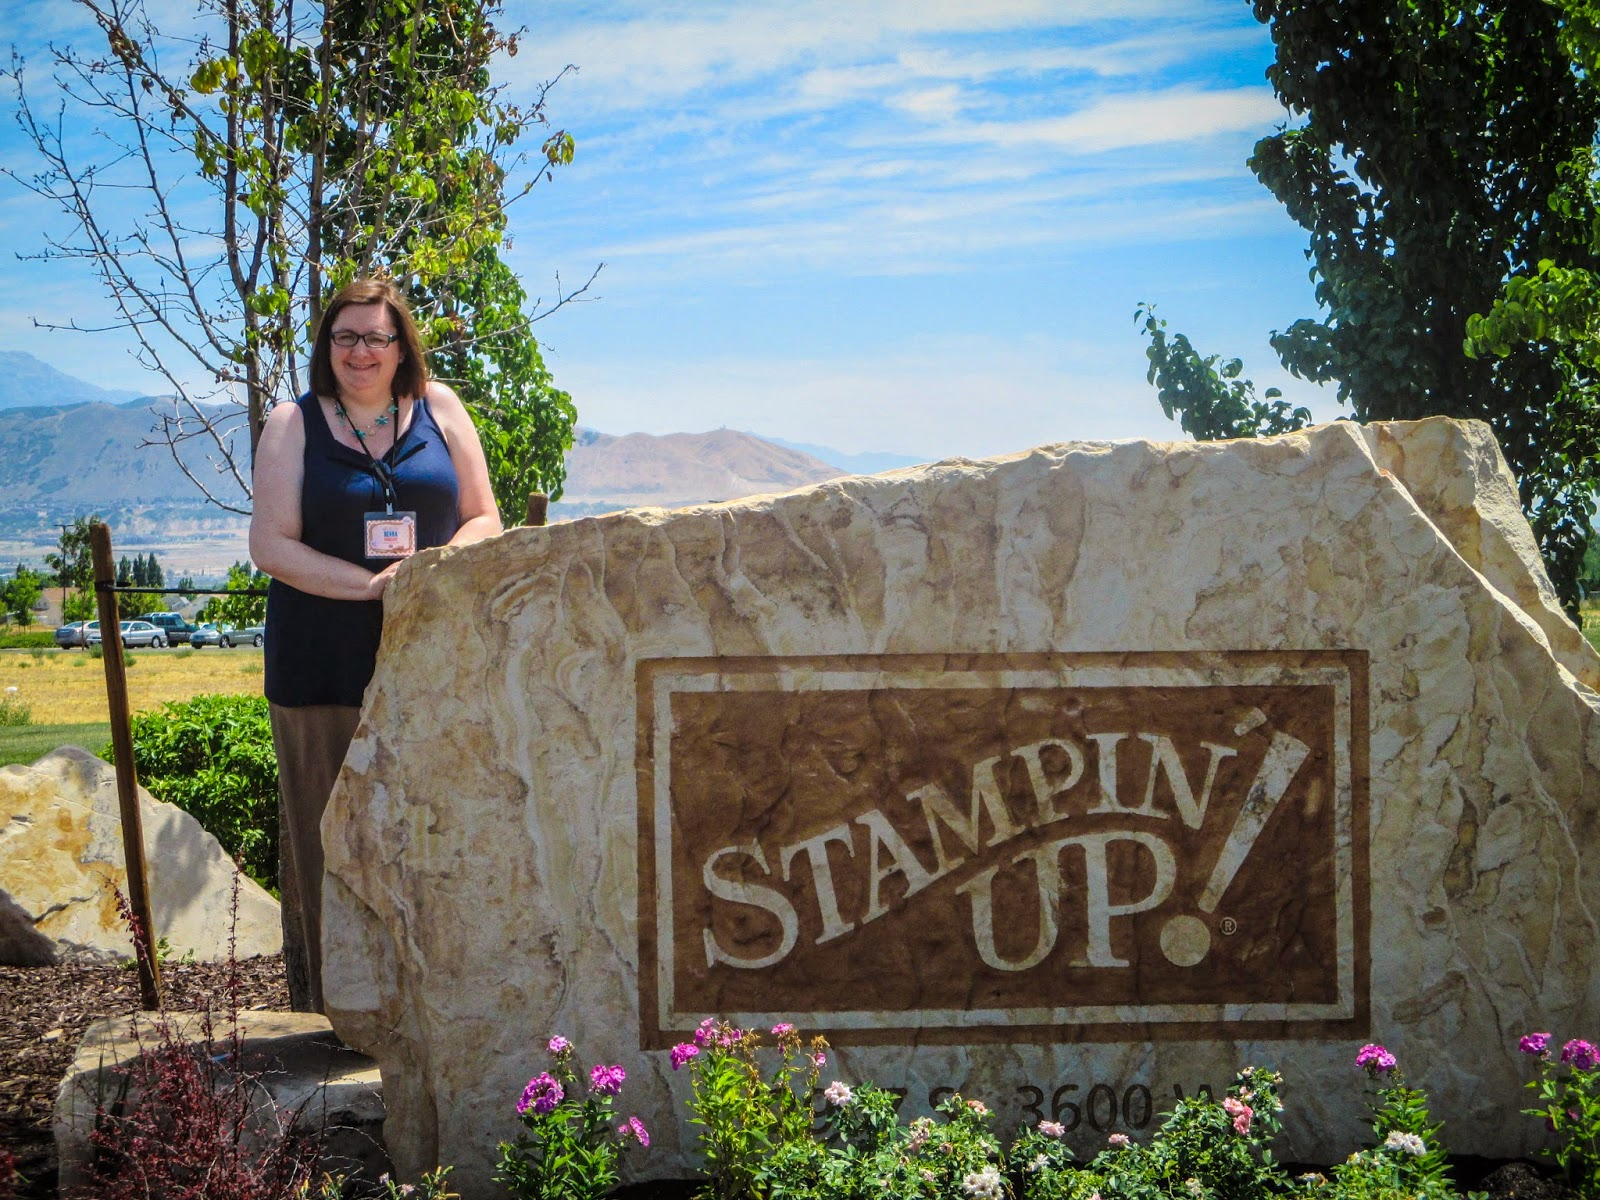 Read Bekka's Stampin' Up! Story here - this could be you!